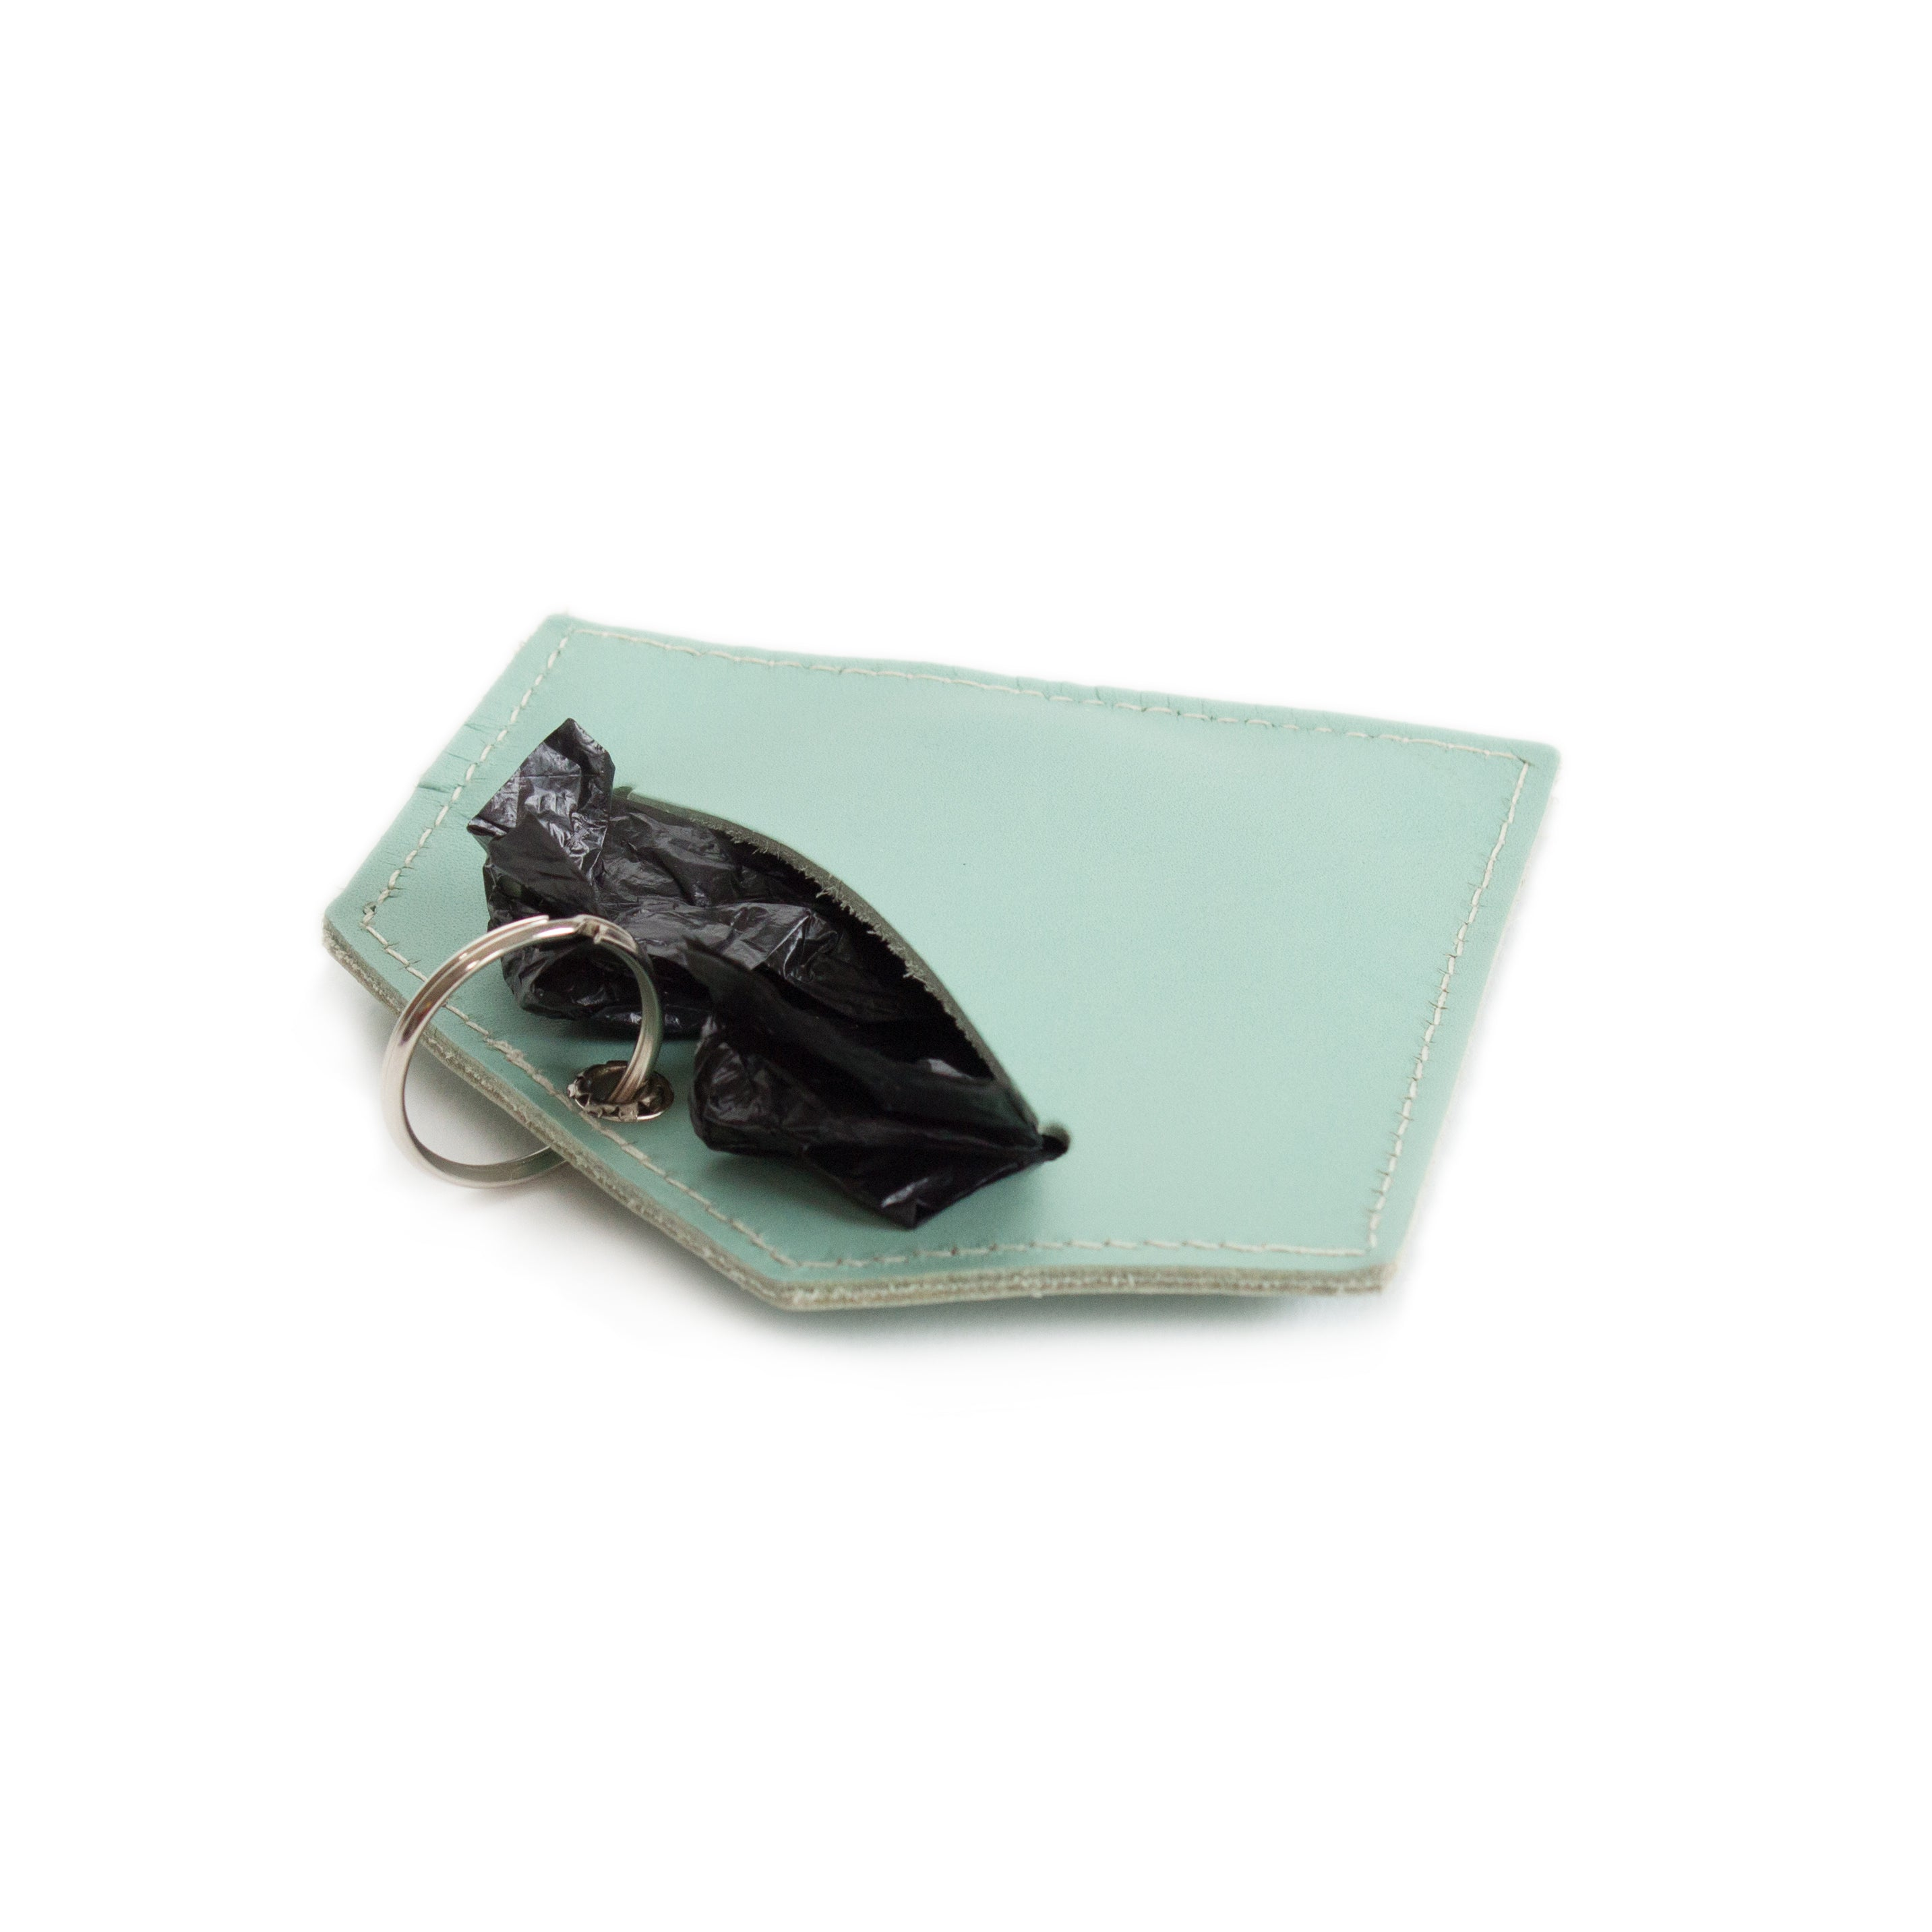 Hiro and Wolf Diamond Poo Pouch Celestial Blue